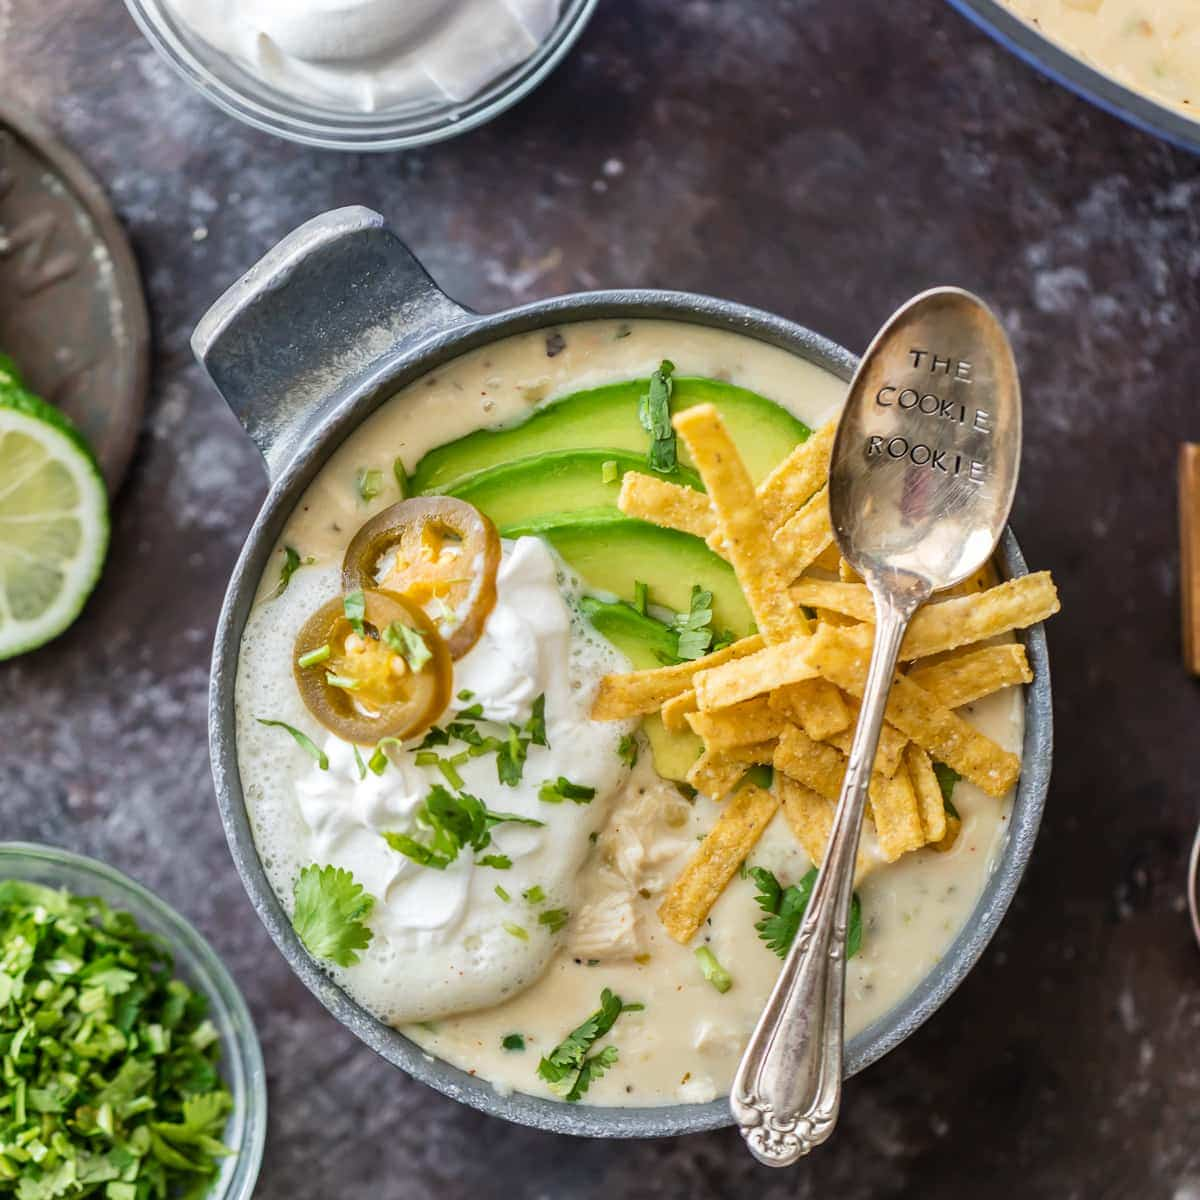 Creamy White Chicken Chili with Cream Cheese - The Cookie Rookie